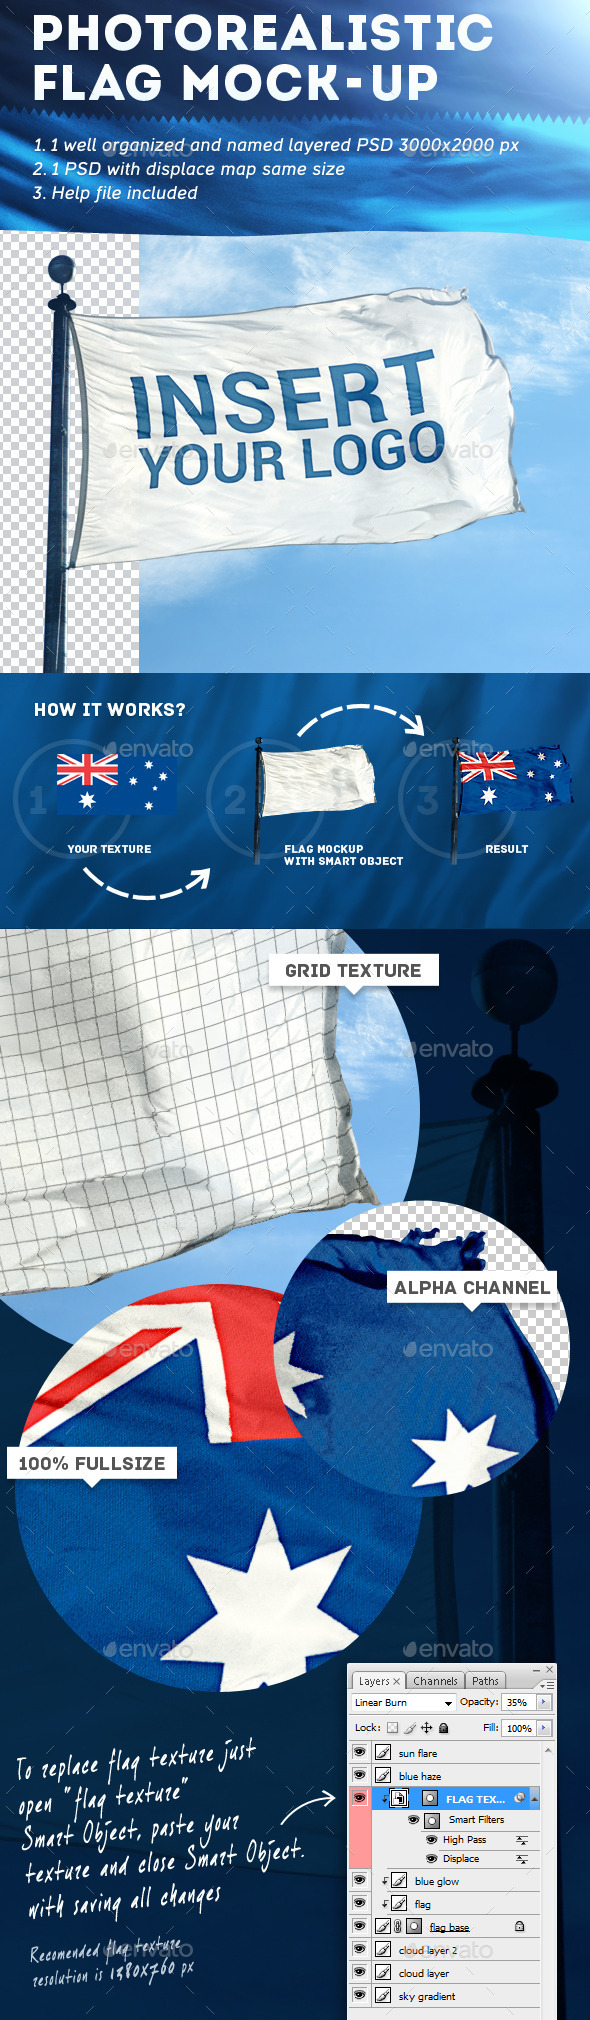 GraphicRiver Photorealistic Flag Mock-Up 9070441